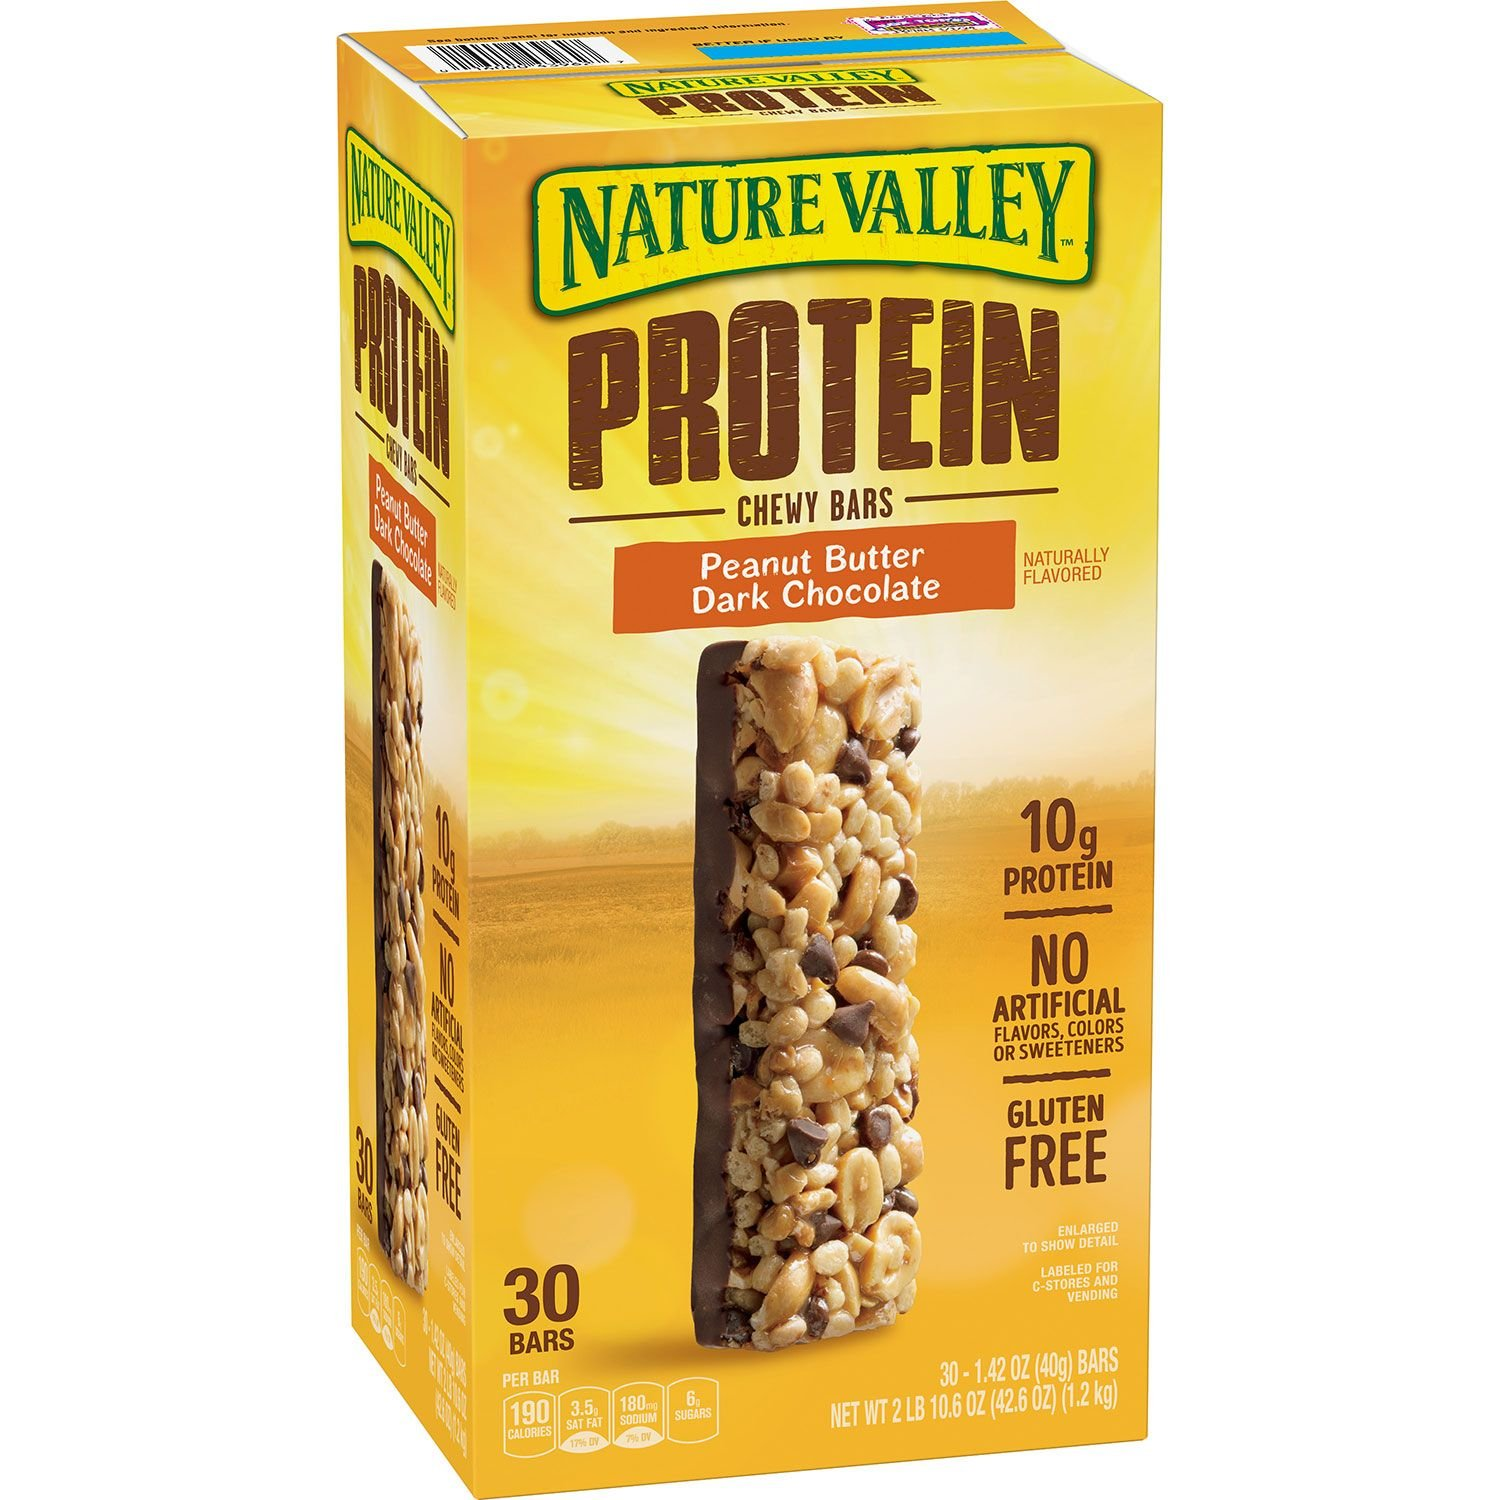 Nature Valley Peanut Butter Dark Chocolate Protein Chewy Bars (1.42 oz, 30 ct.) by Nature Valley